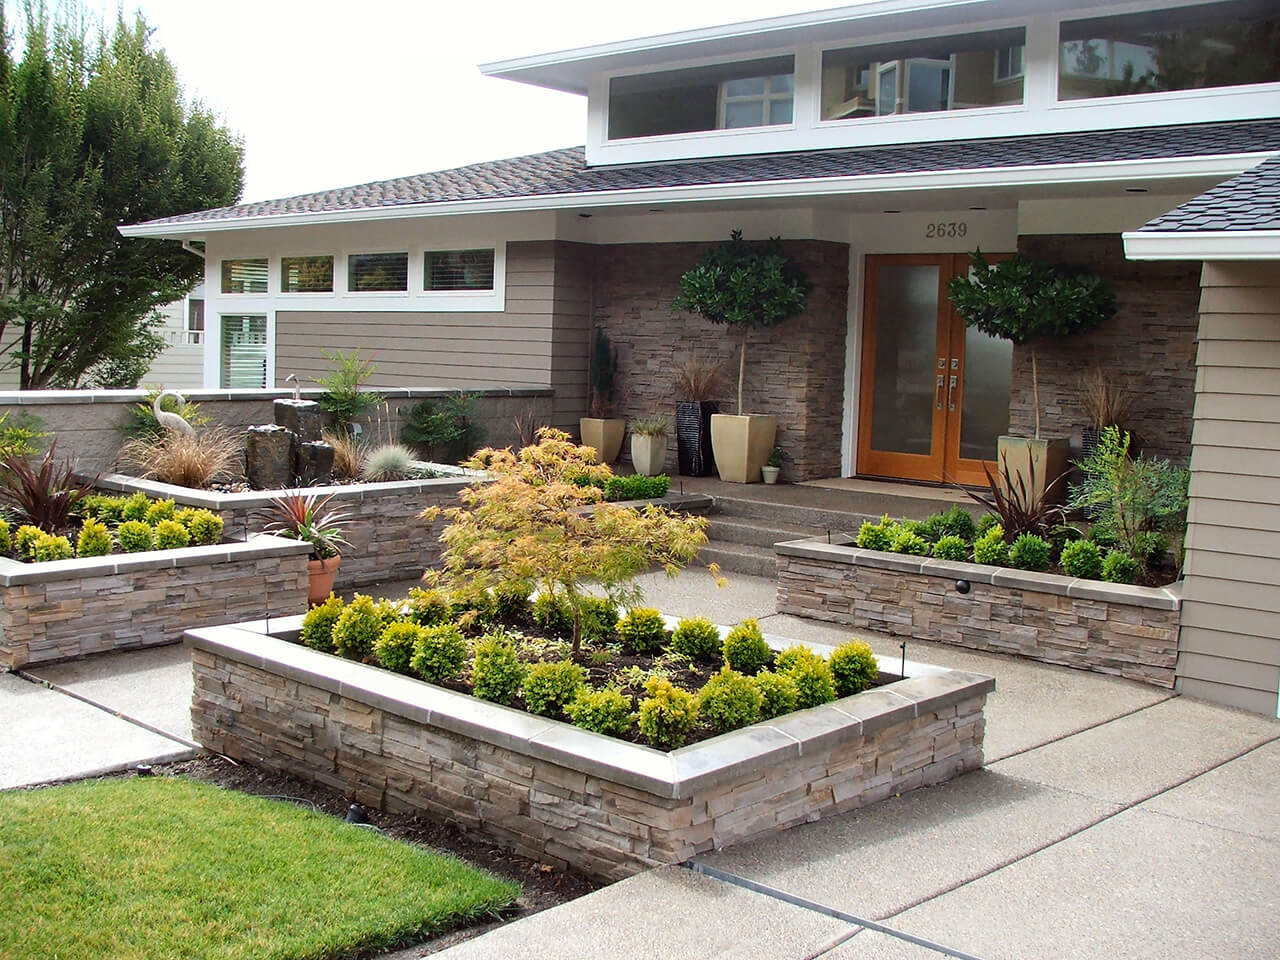 20 brilliant front garden landscaping ideas style motivation for Ideas for my front garden